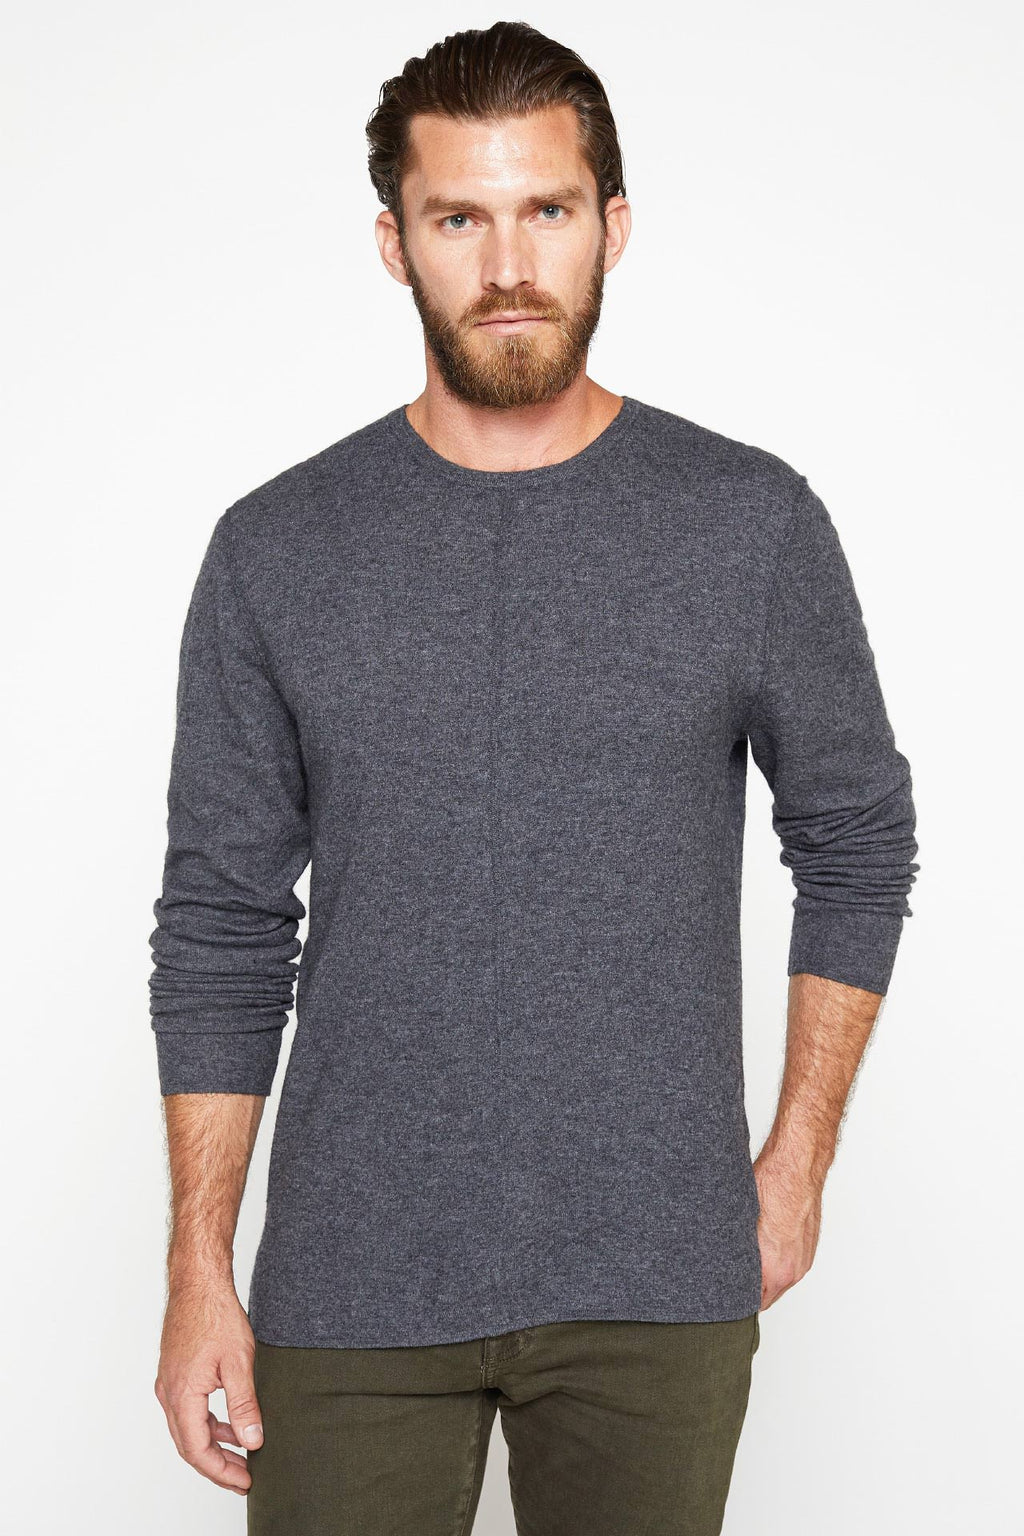 The Emmett Sweater in Charcoal_Front View Sleeve